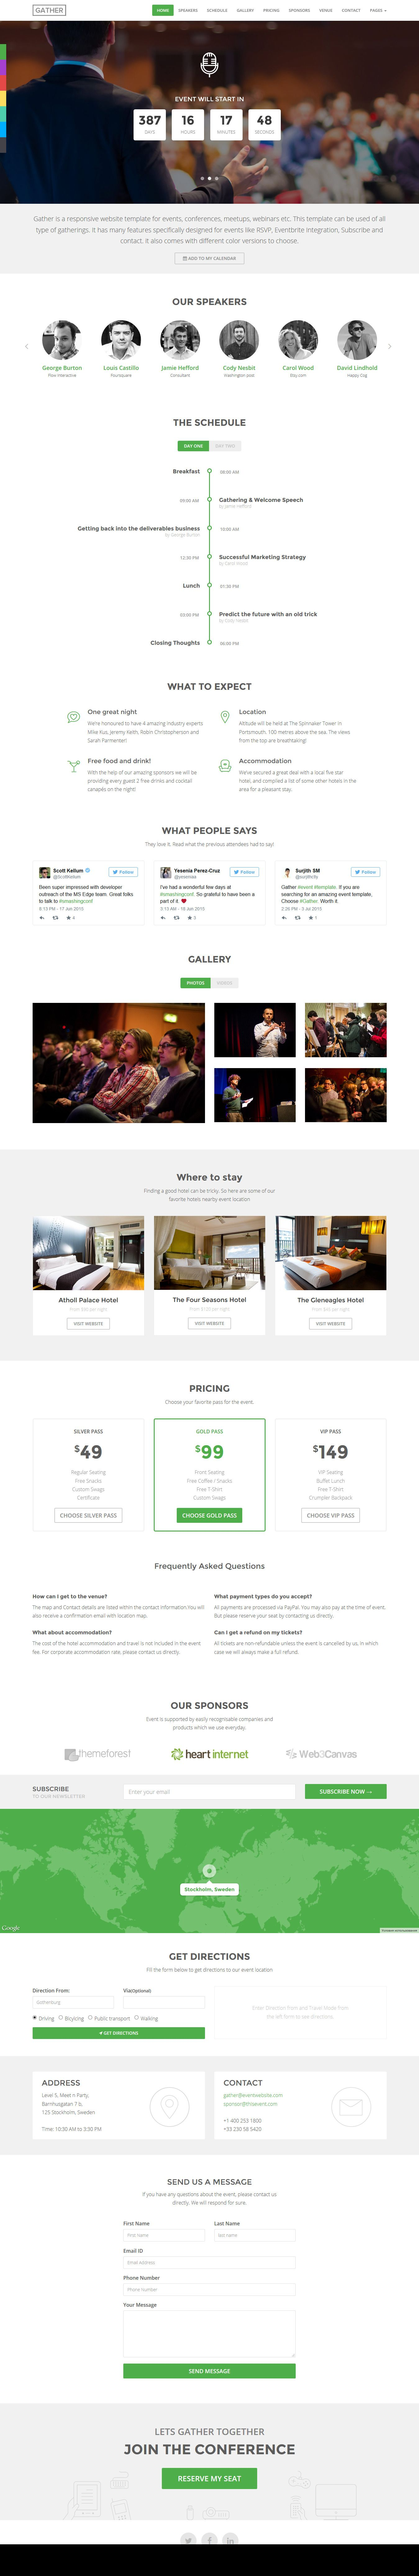 Event Conference Landing Page Template - Gather #website #webdesign ...